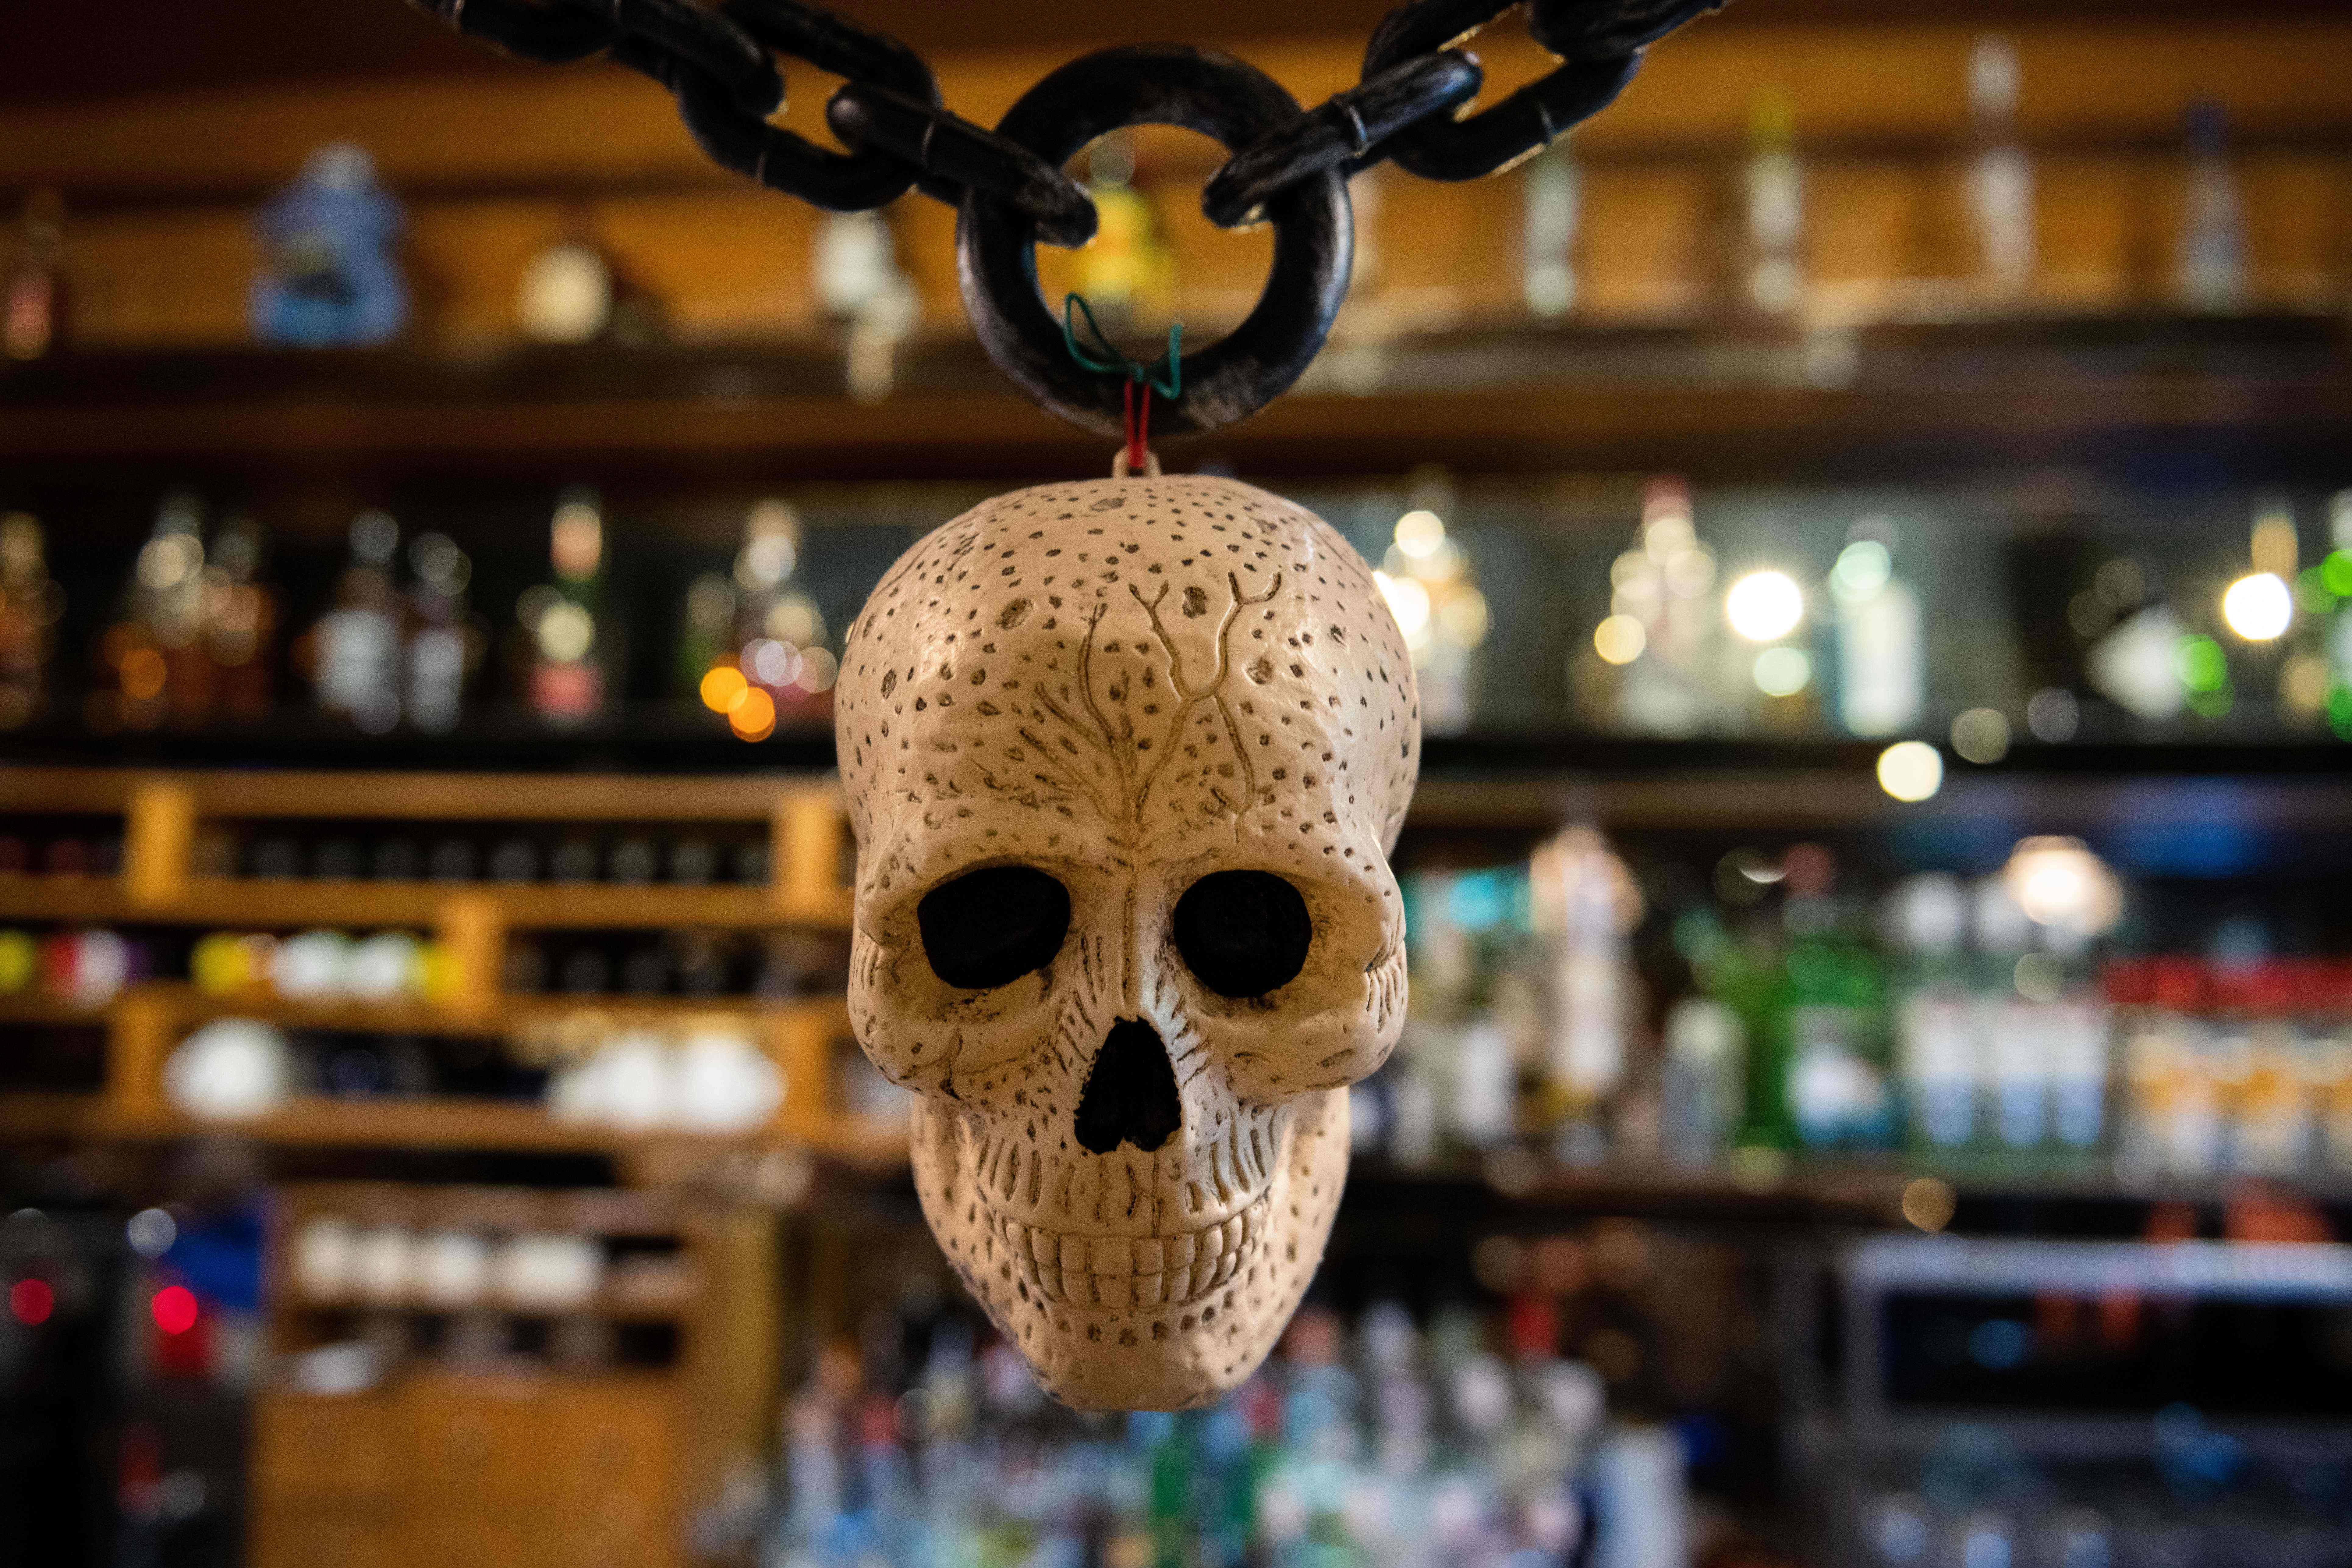 A photo of a skull Halloween decoration is displayed in front of bottles of alcohol at a bar